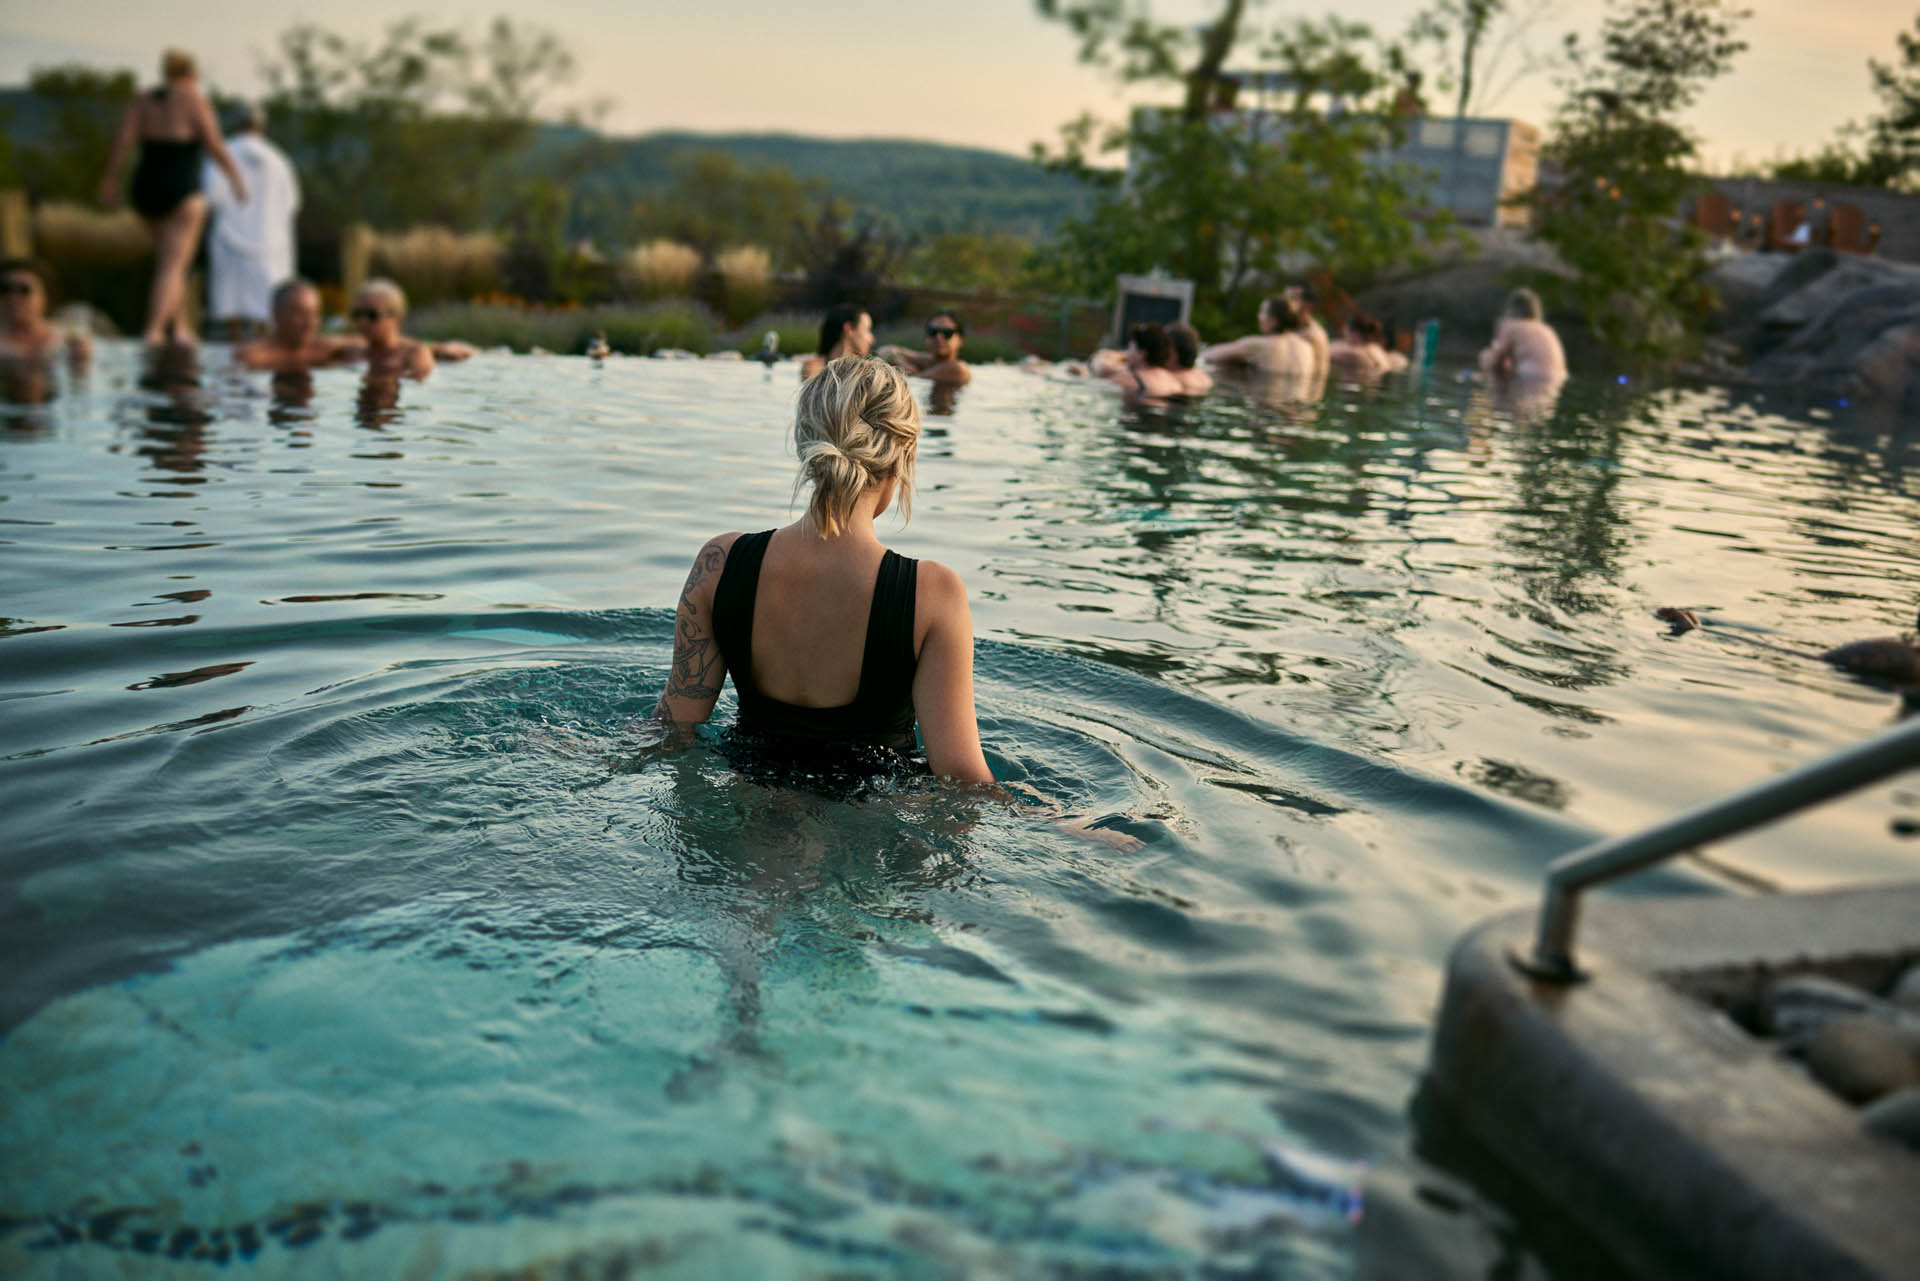 Woman bathing in the infinite pool with others in the background at Nordik Spa Nature